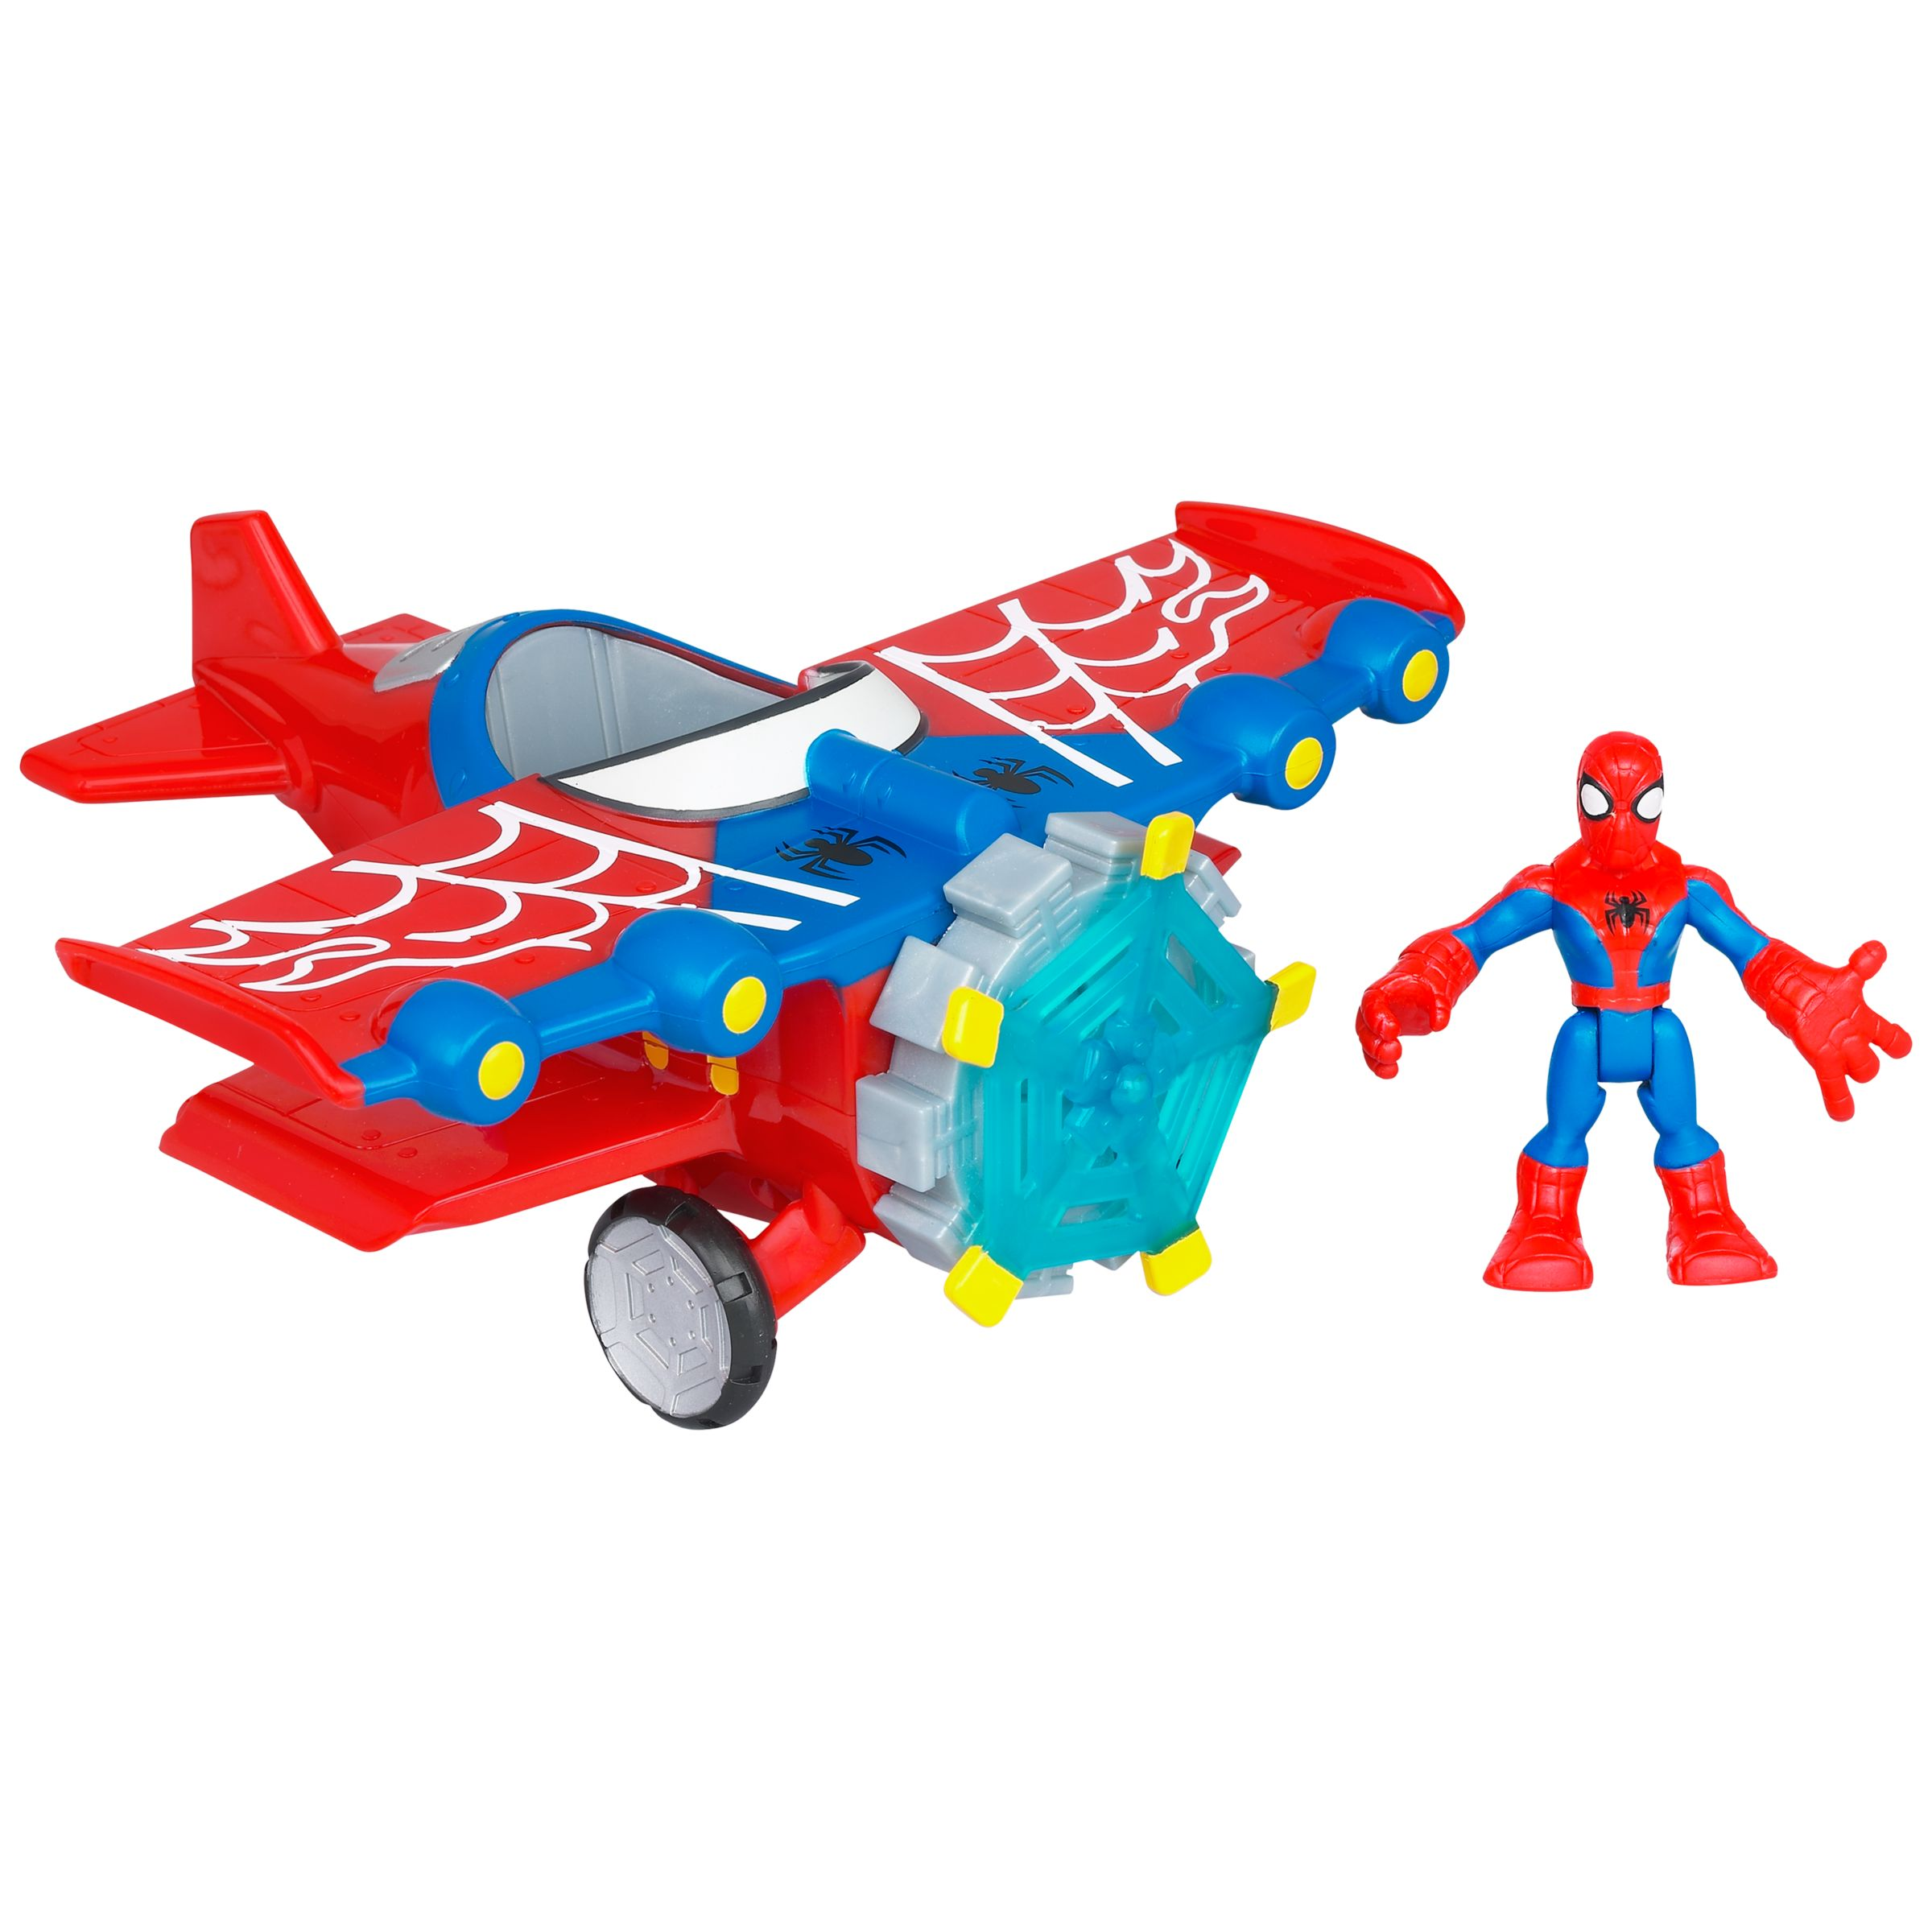 Playskool Heroes Spider-Man Vehicle, Assorted